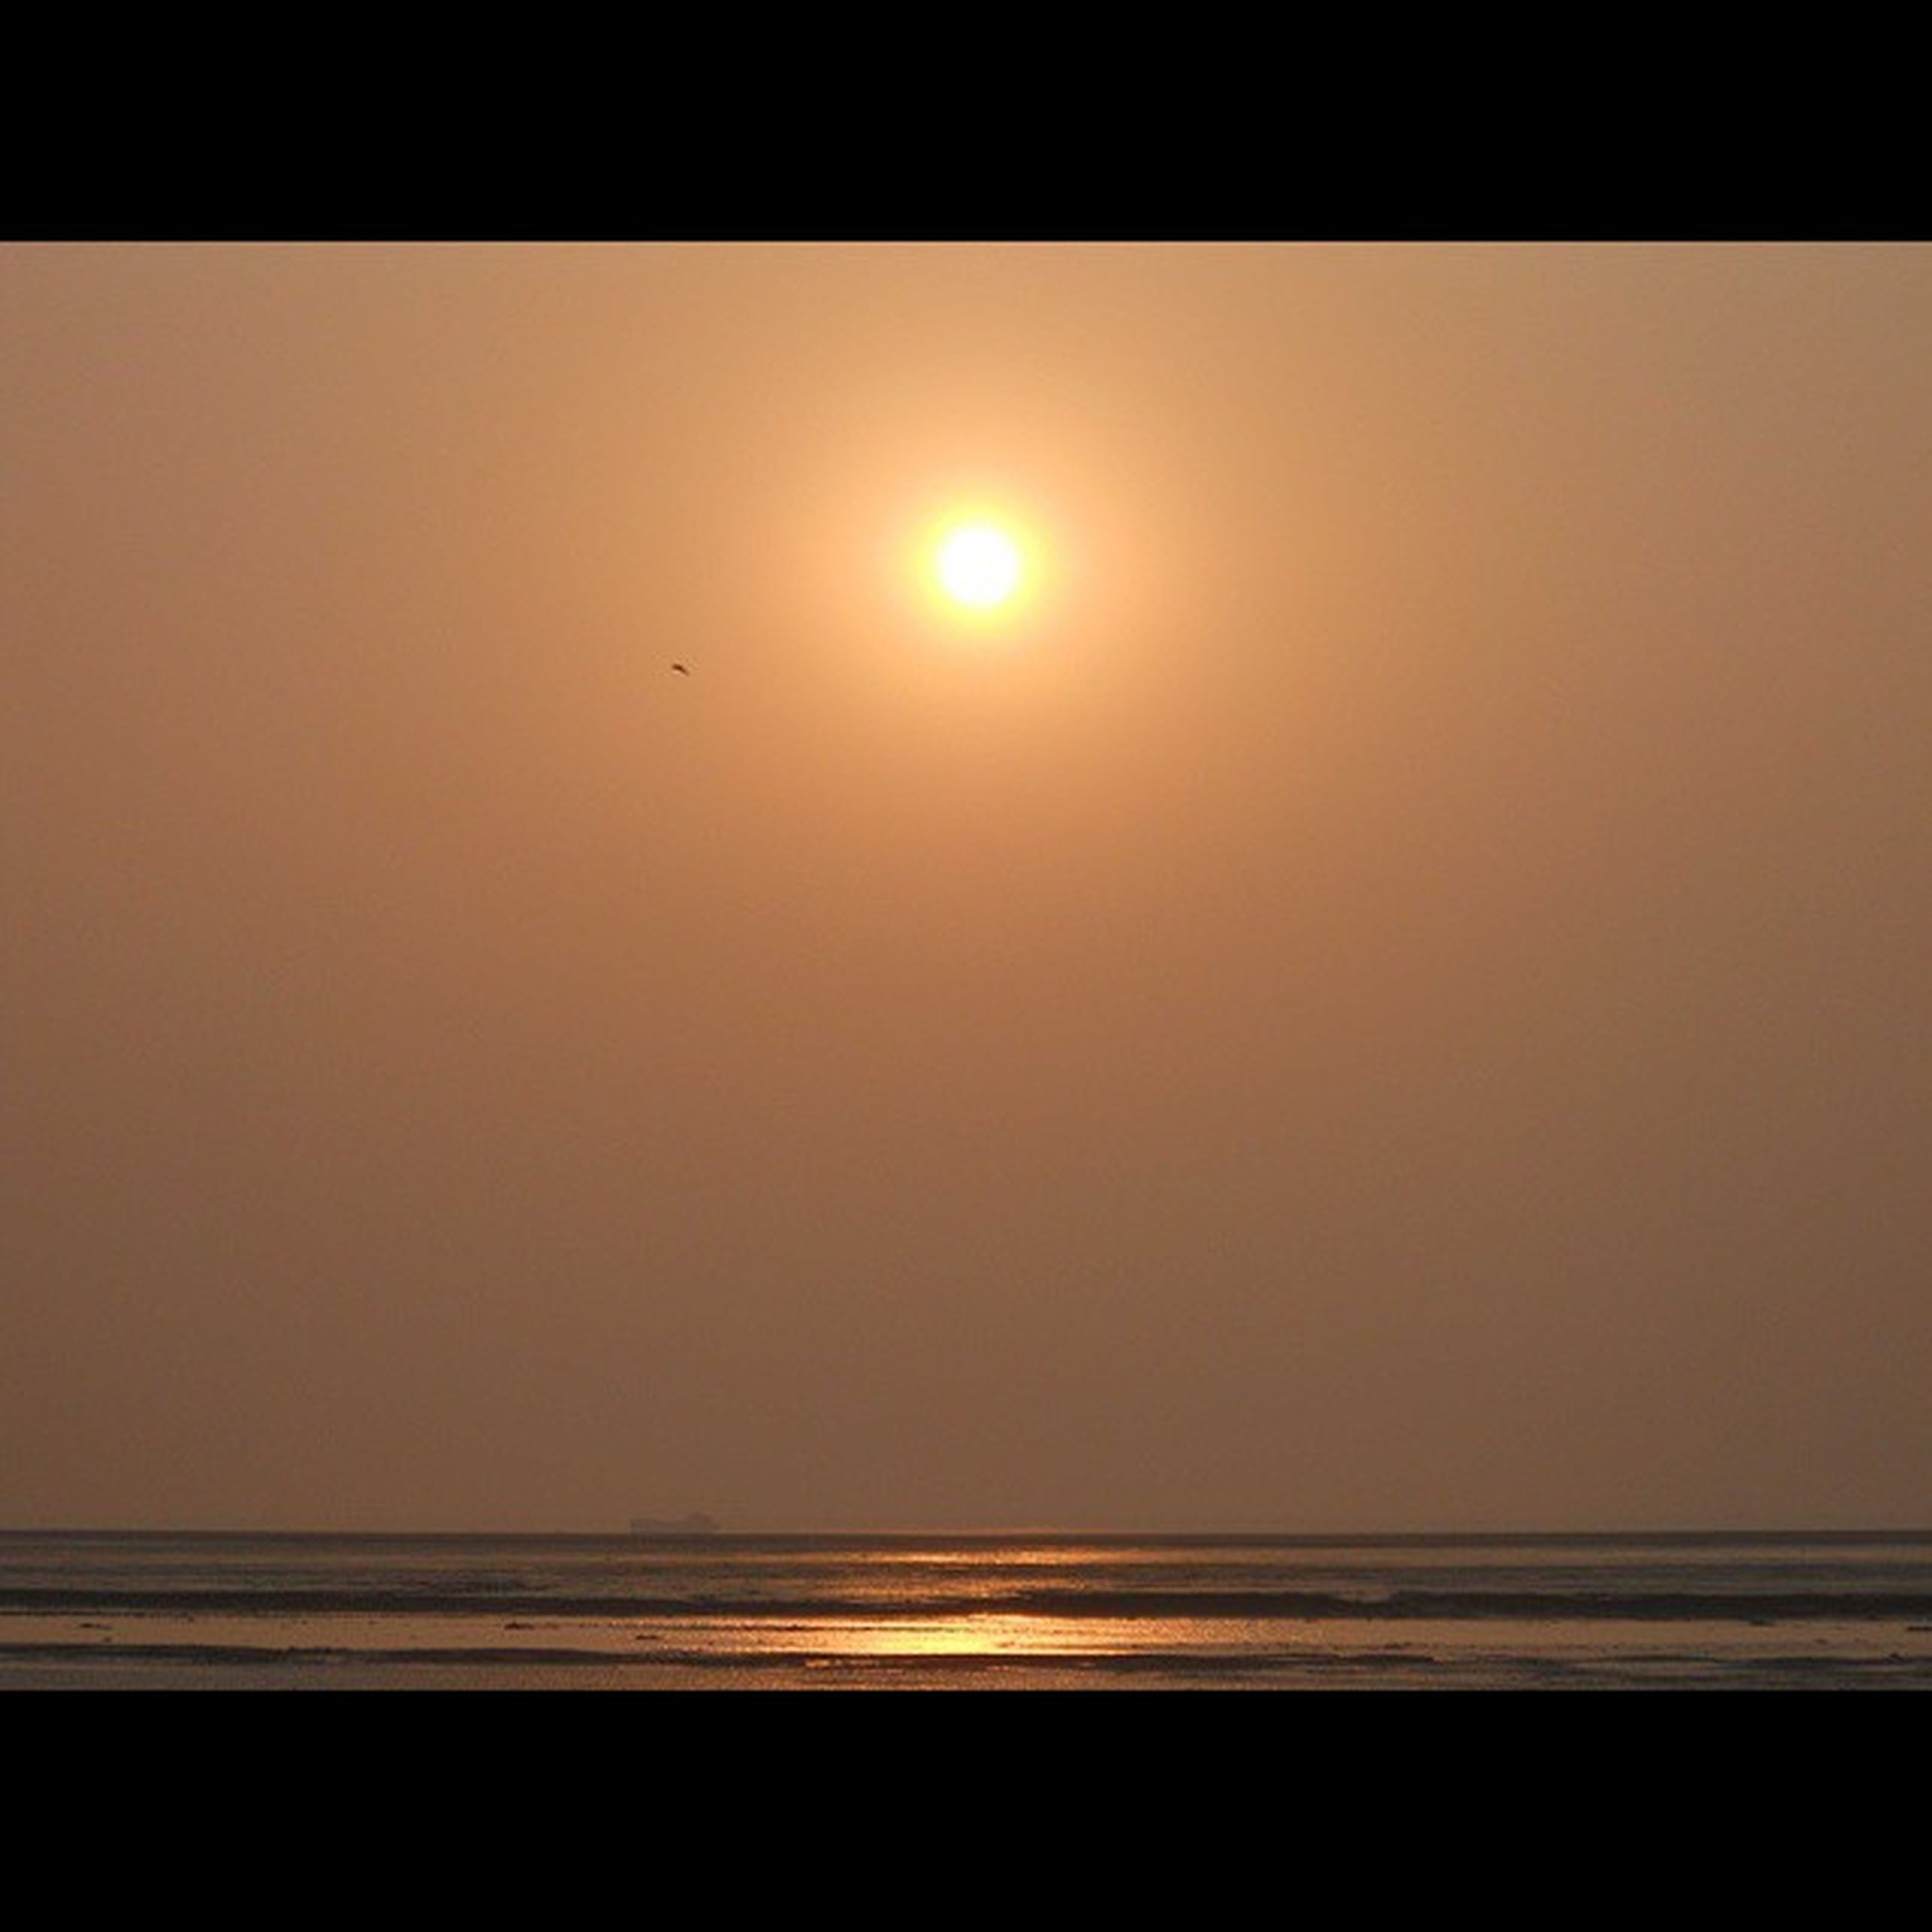 In the sky the bird is flying free, and the ship is sailing in the odds of the sea. Though lifeless and noiseless now, but you can never trust a sea anyhow. TryingToCreateAPoem 😅 Sunset Throwback Surat Dumasbeach Ilovetoclick Calm Placid  Atmosphere